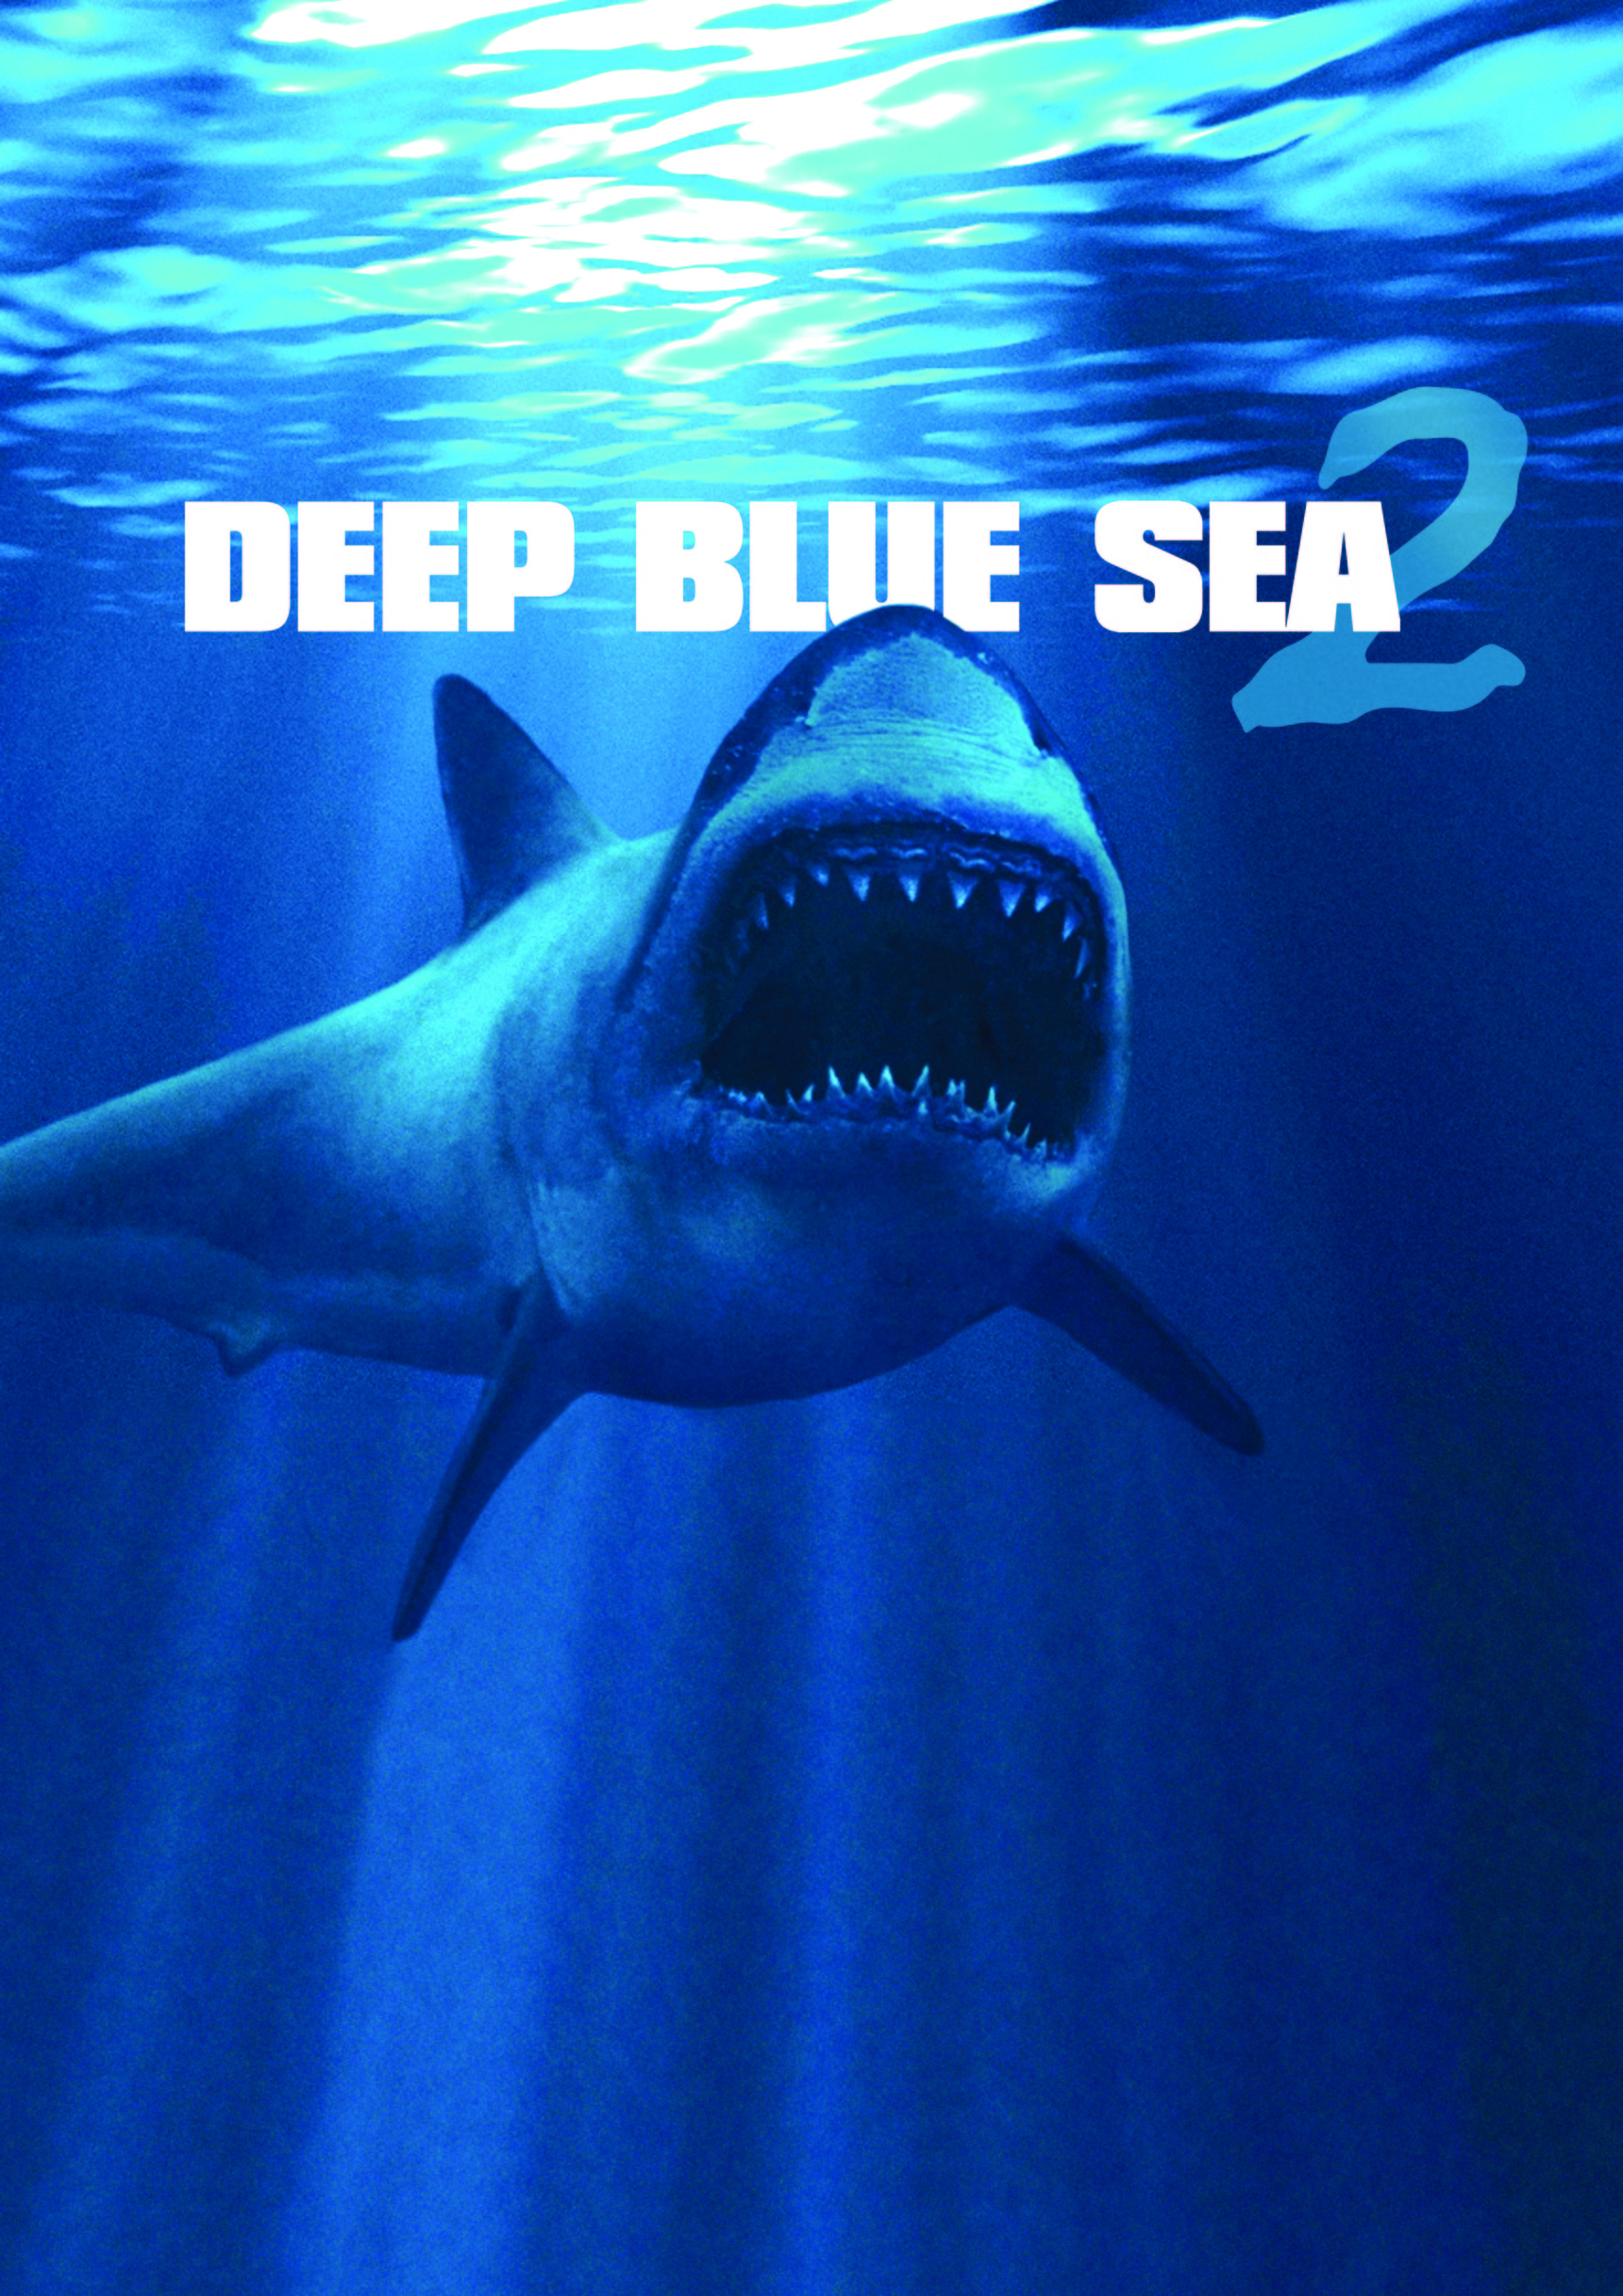 deep%20blue%20sea.jpg?itok=lJHl4Mq6